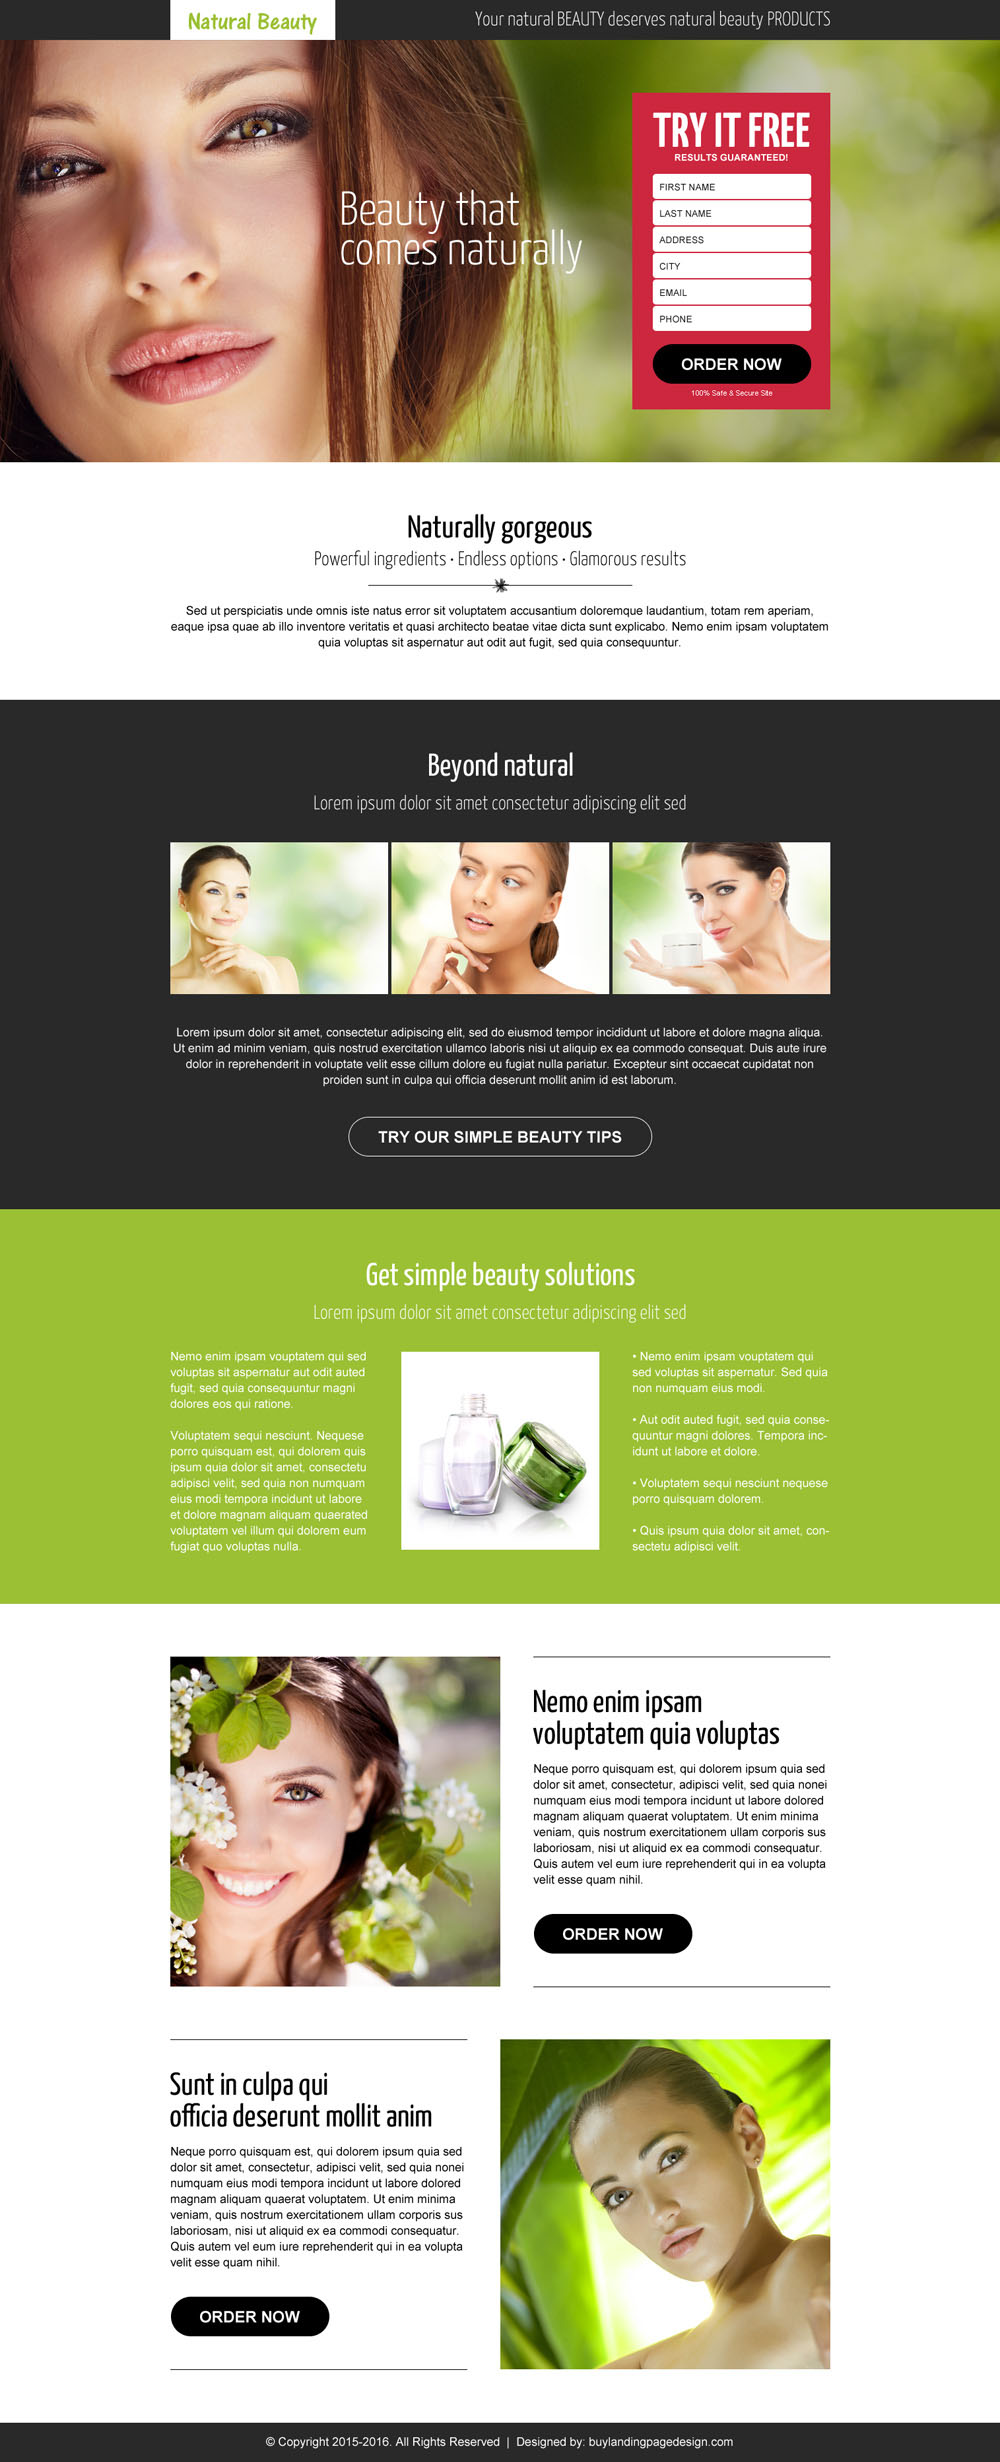 natural-beauty-product-lead-generation-converting-landing-page-design-019